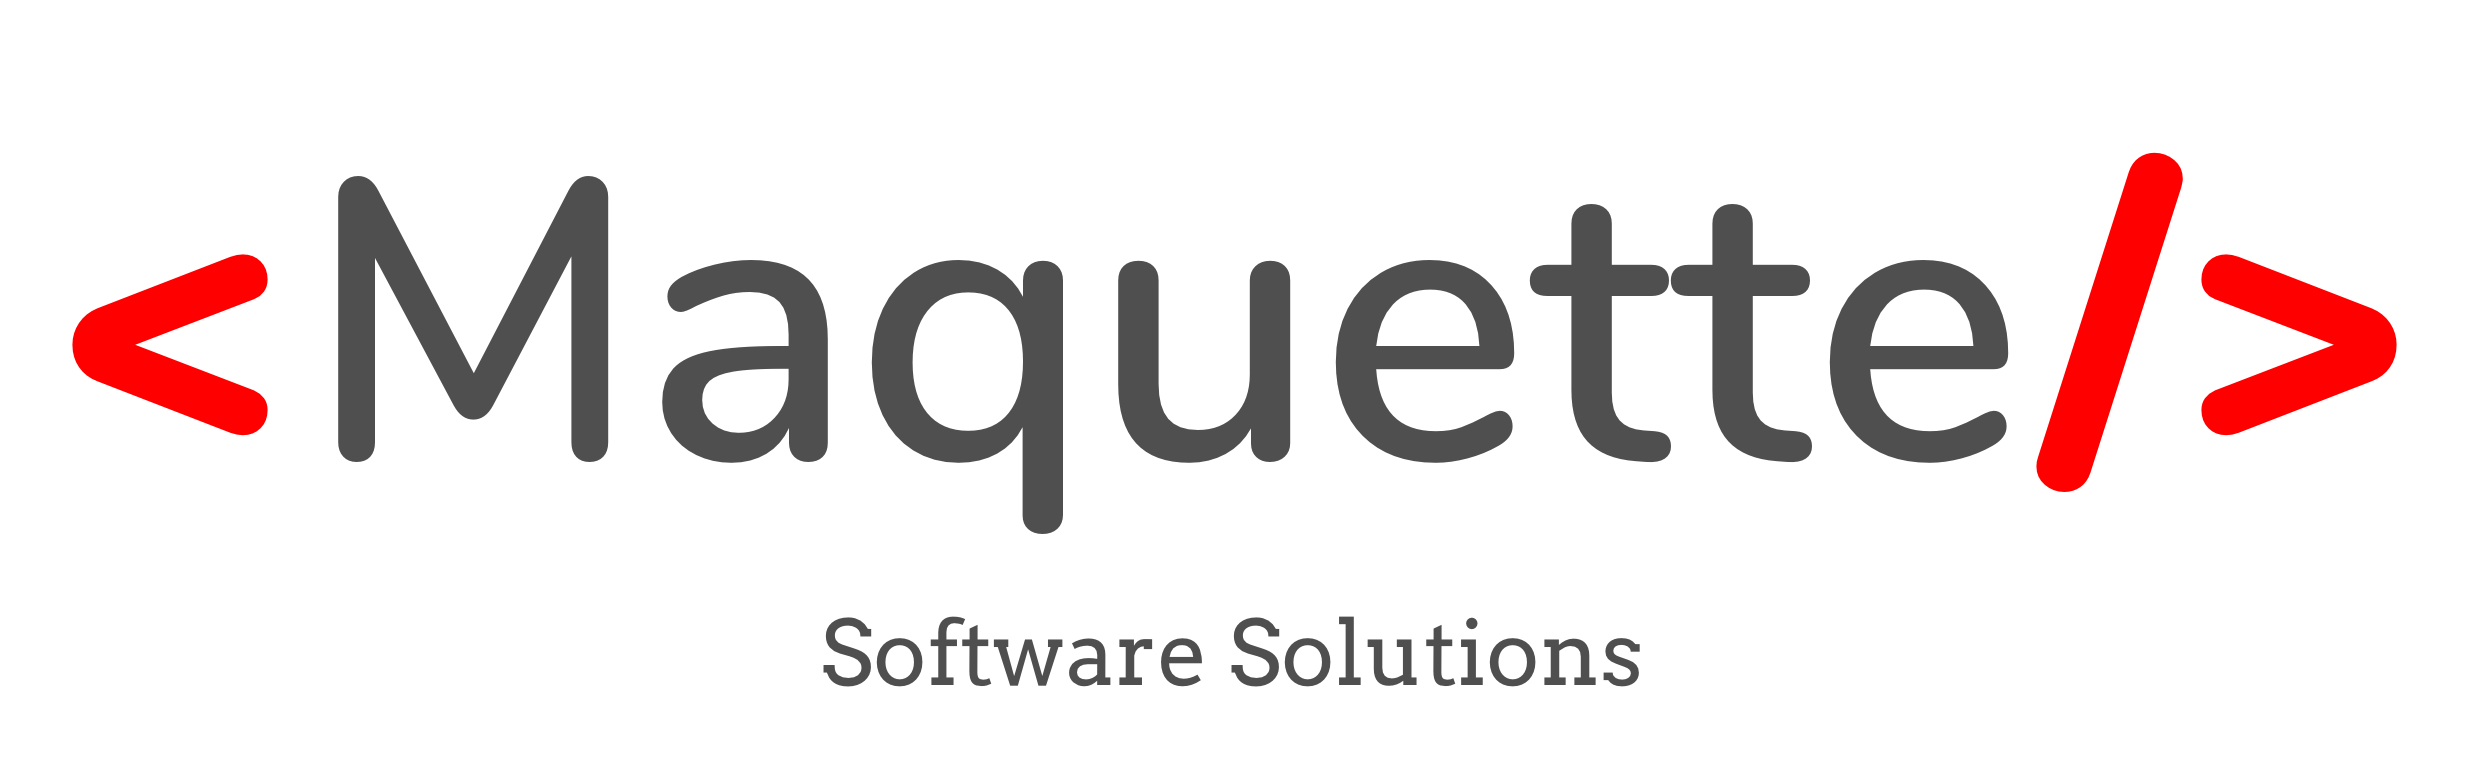 Maquette Software Solutions logo